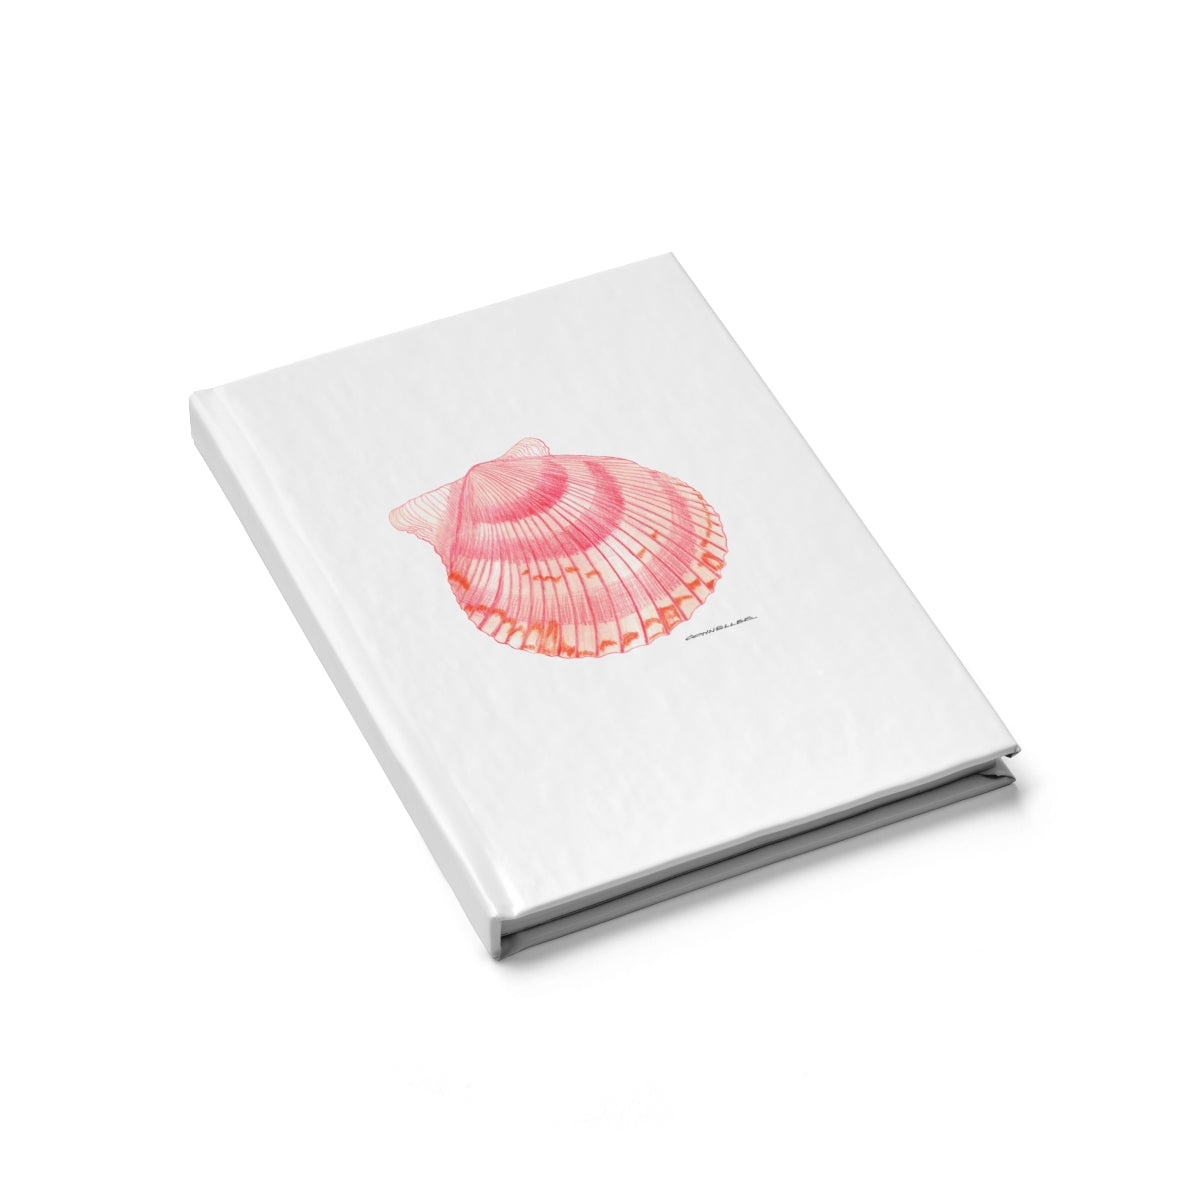 Journal - Scallop Shell - Falling Leaf Card Co.